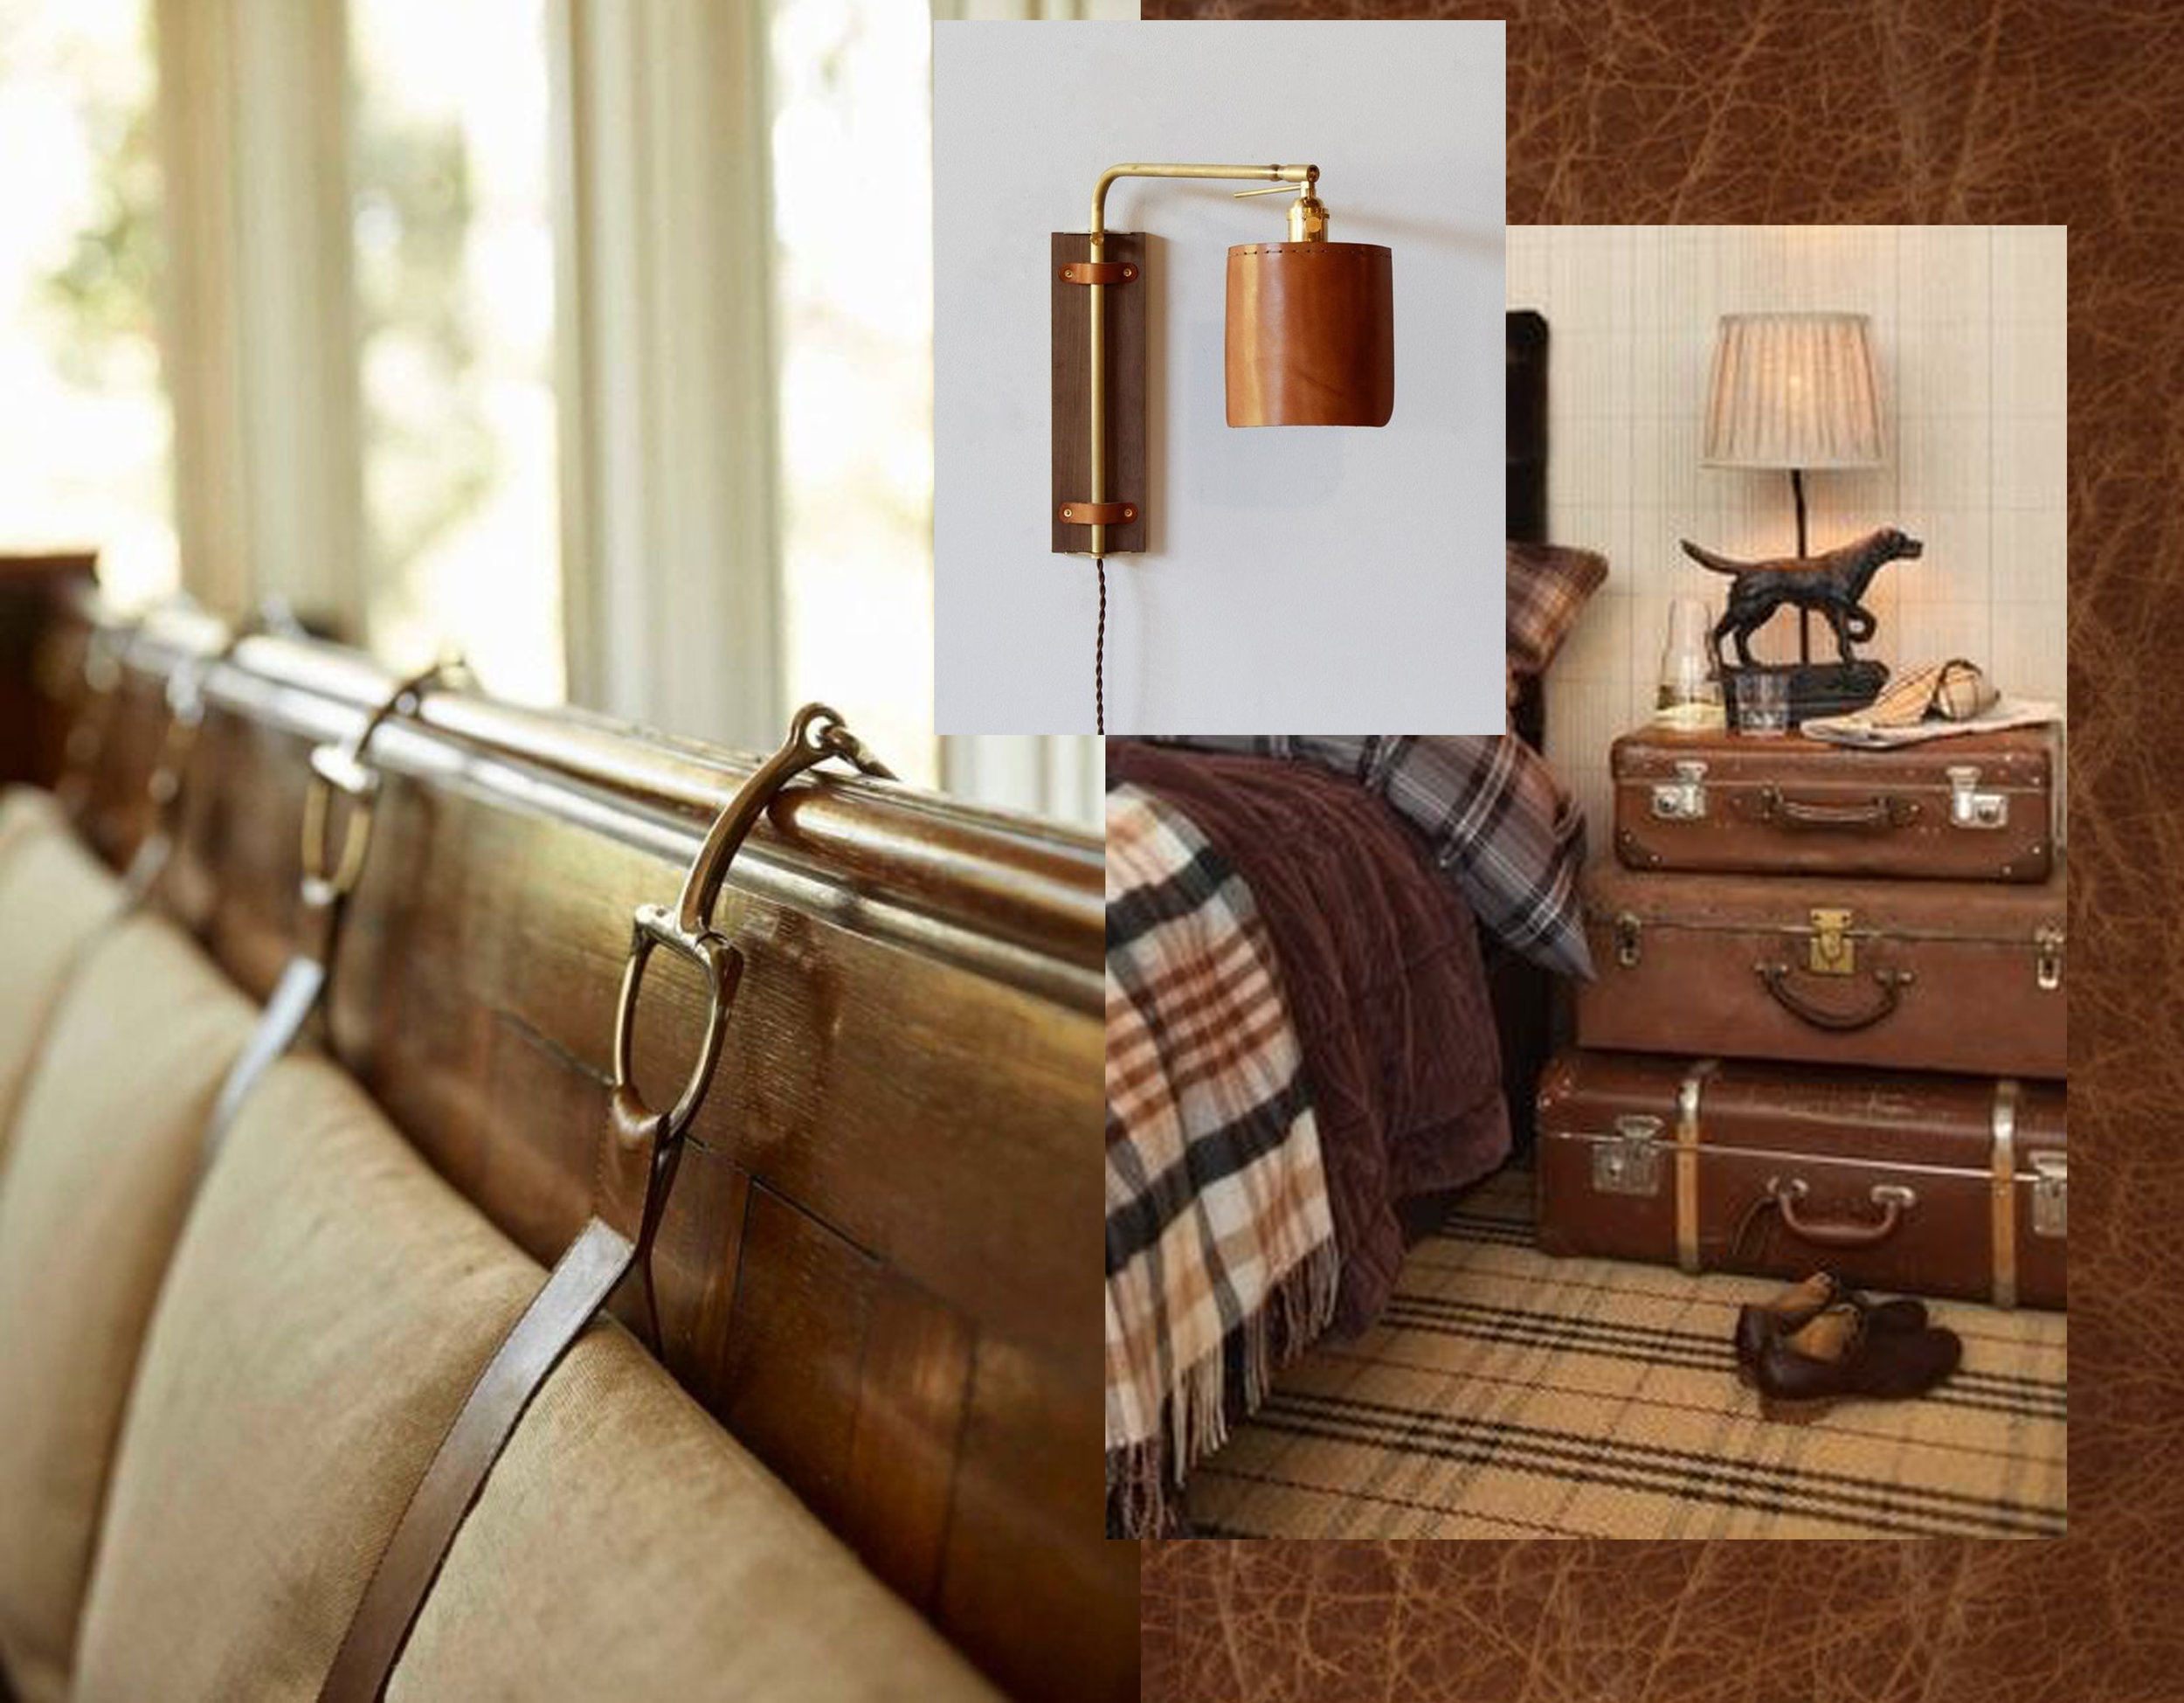 idea for banquette via  Bungalow  - leather suitcases via  Disfunctional Designs  - Ava wall scone  Lostine